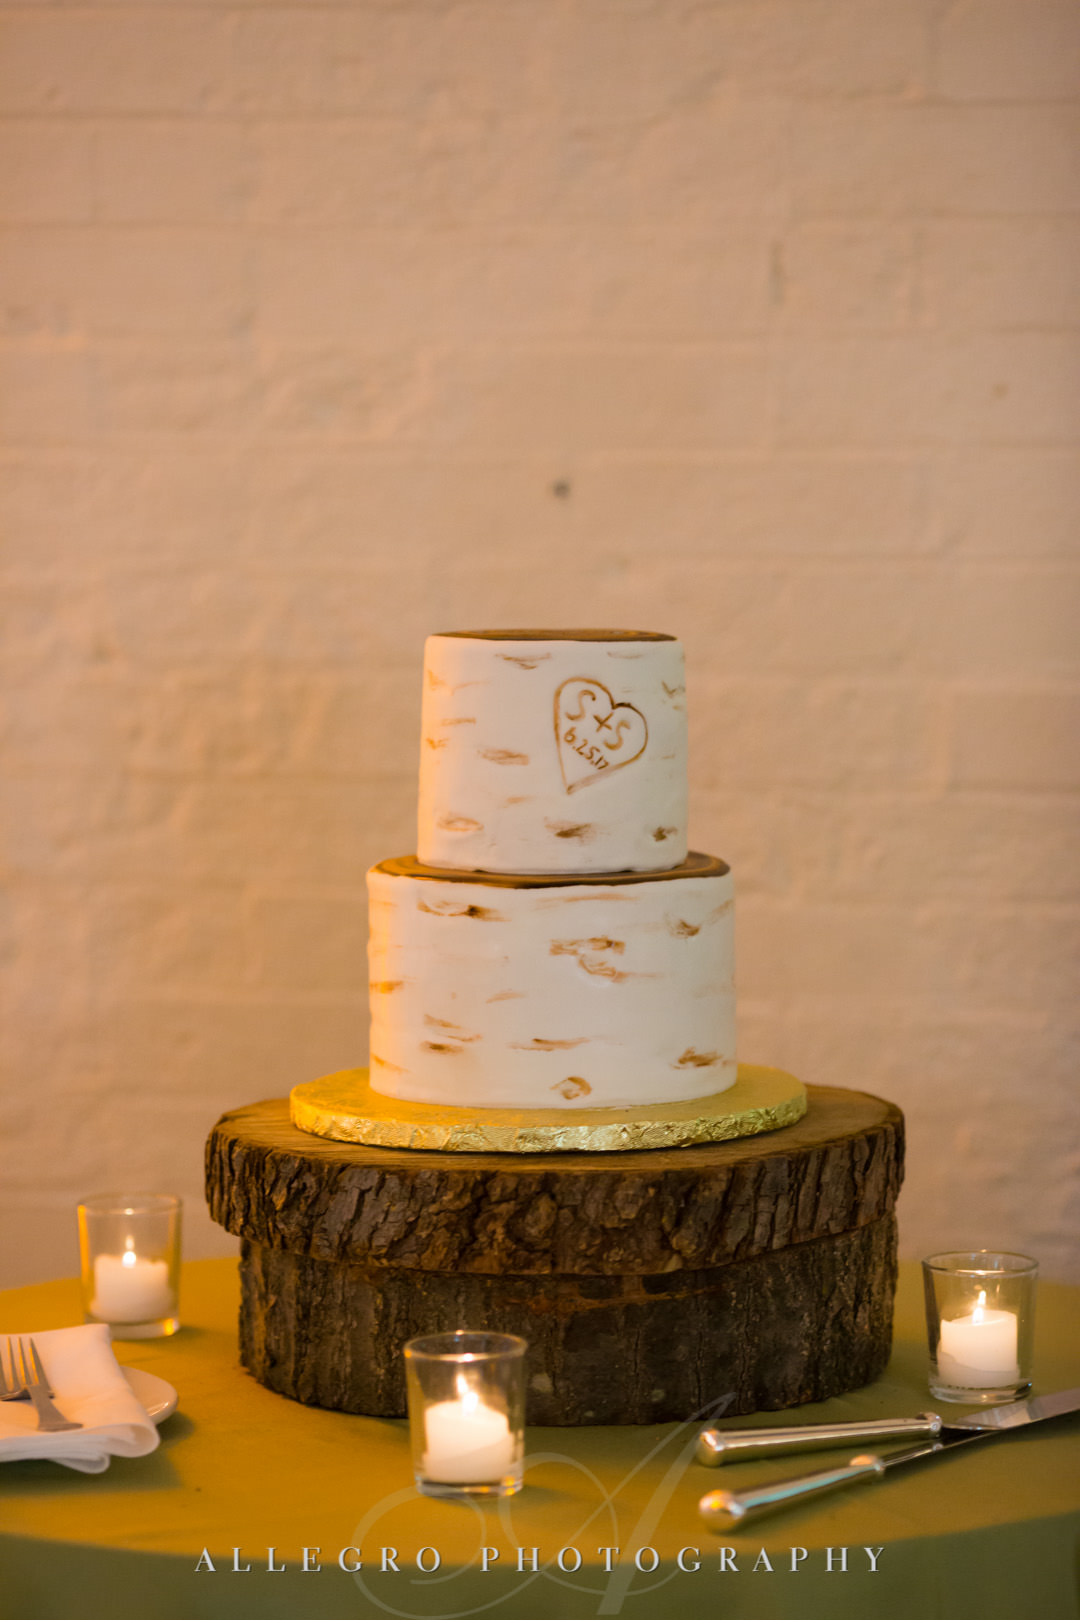 Two-tiered white wedding cake | Allegro Photography